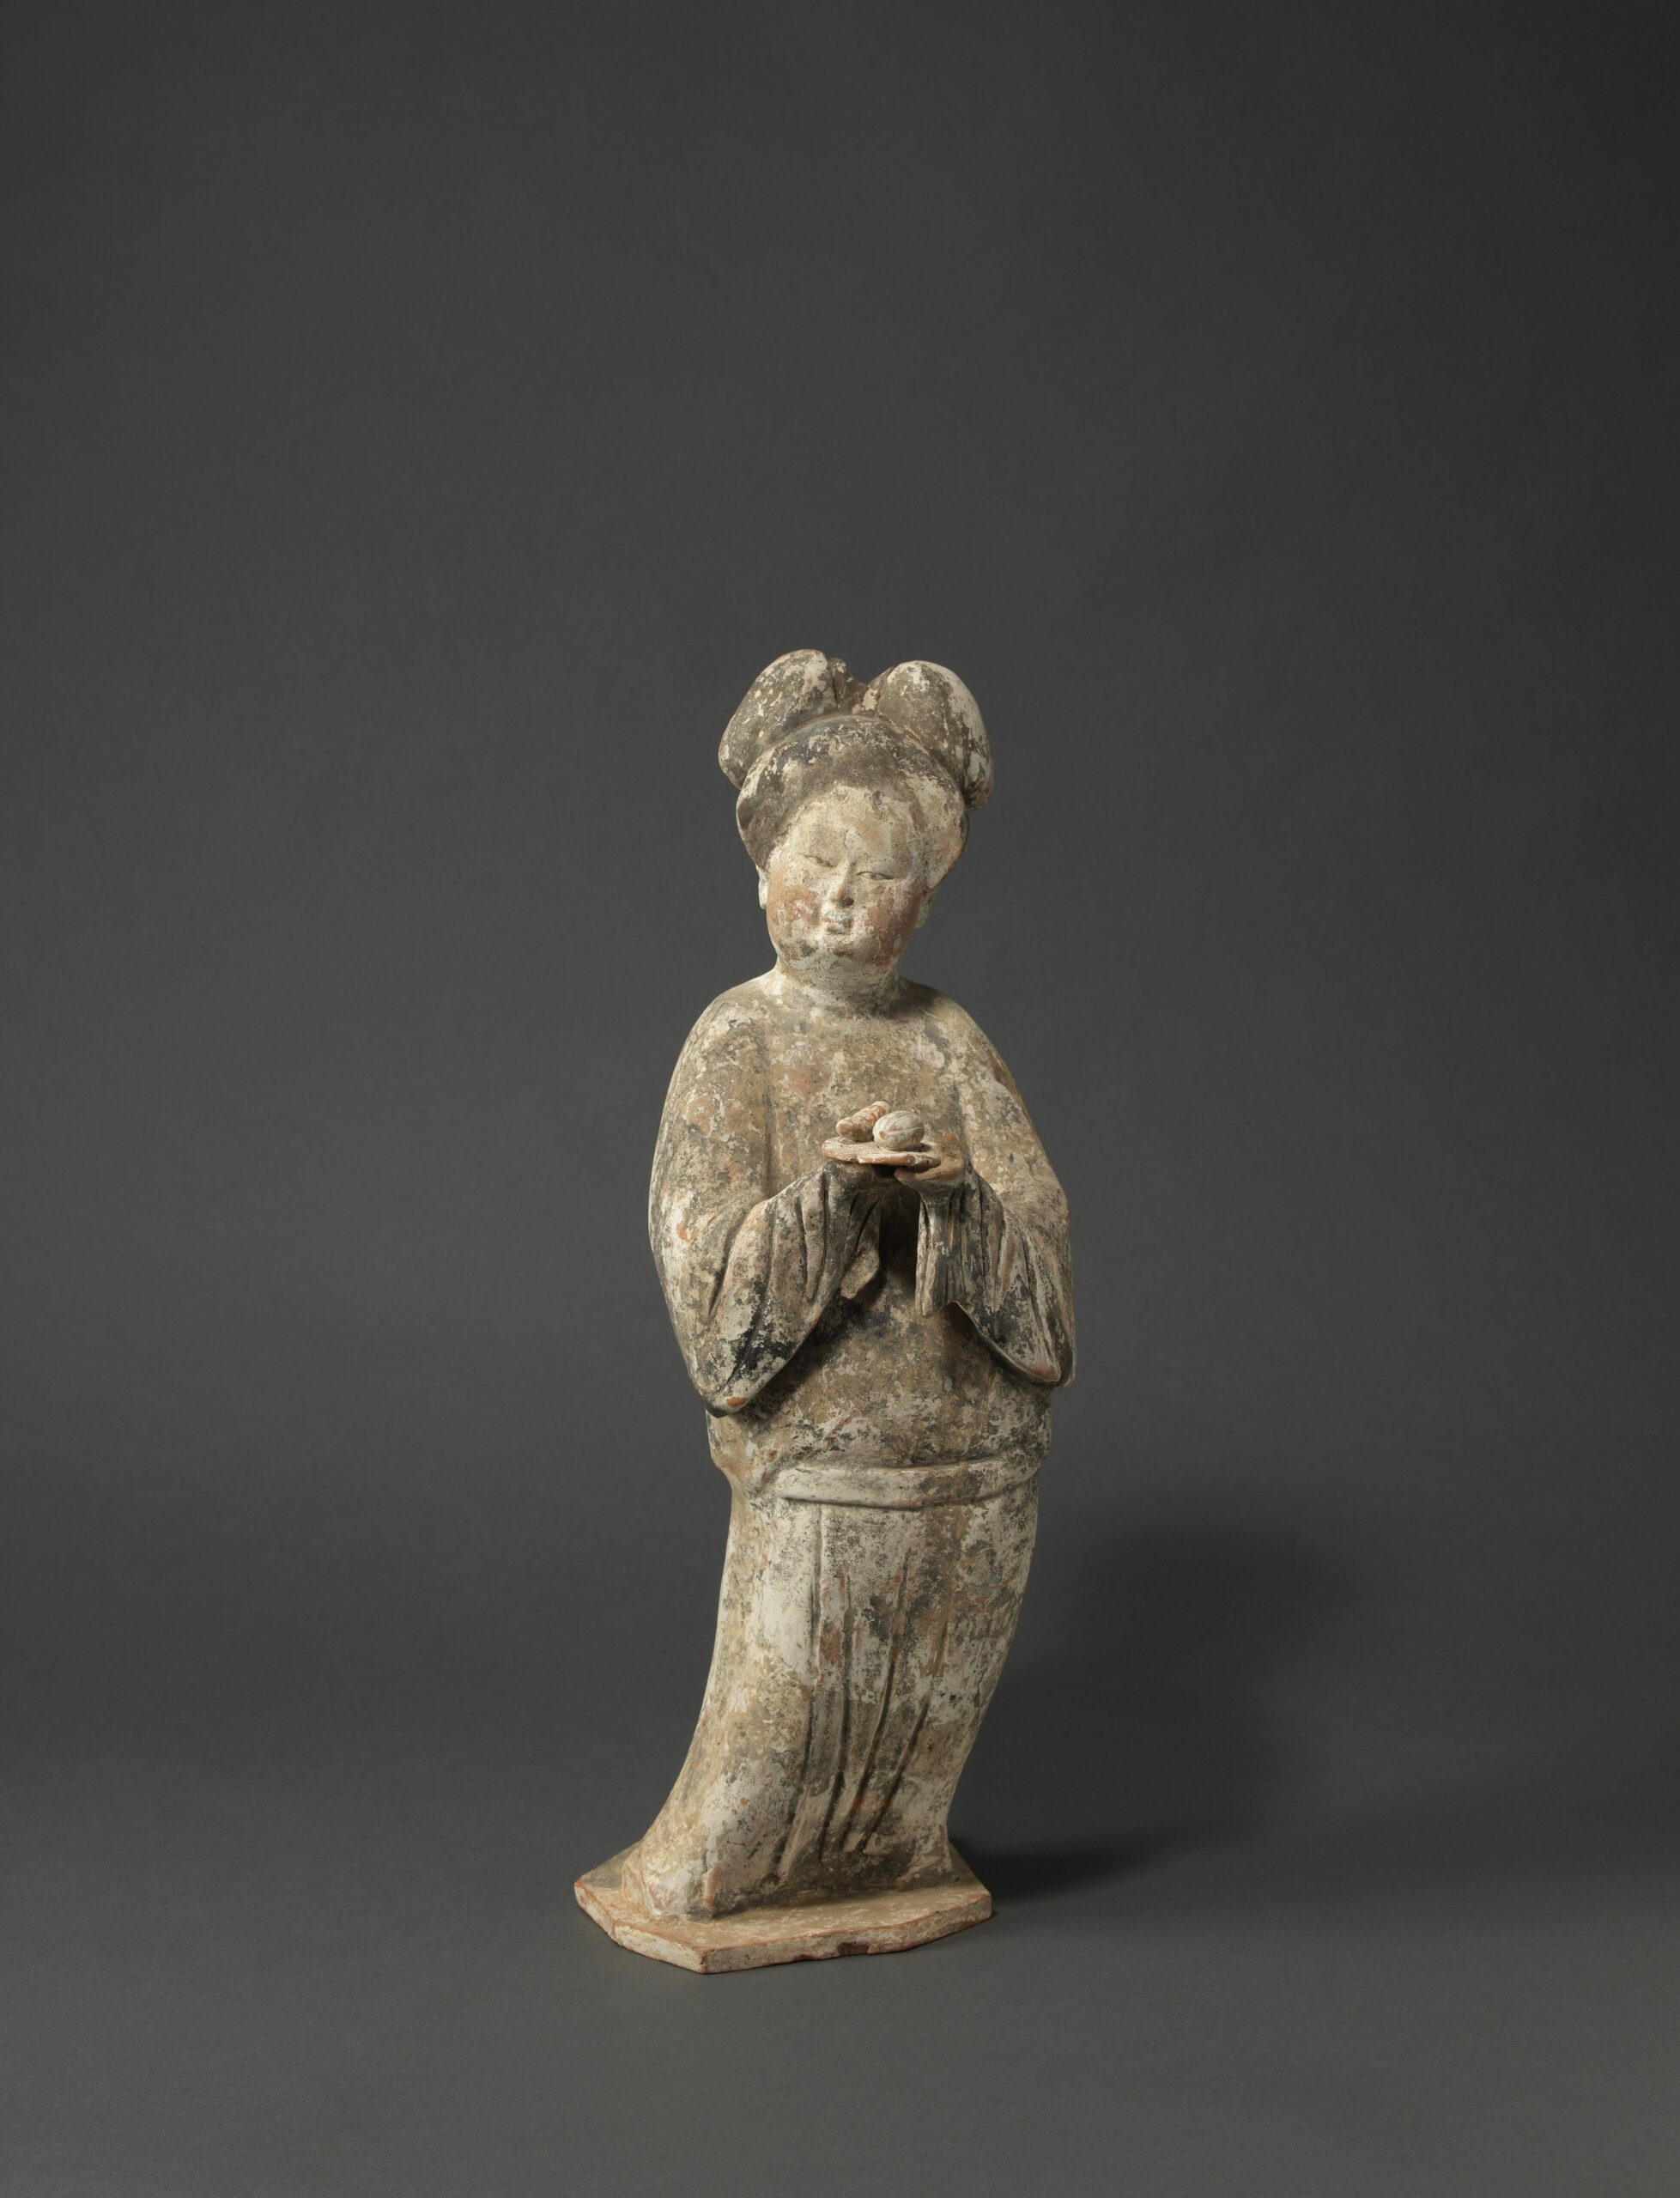 A PAINTED POTTERY FIGURE OF A COURT LADY HOLDING A DISH OF FRUIT Tang dynasty (618-906), first half 8th century Height: 46 cm, 18 inches 唐 彩繪陶捧盤仕女俑 高46釐米